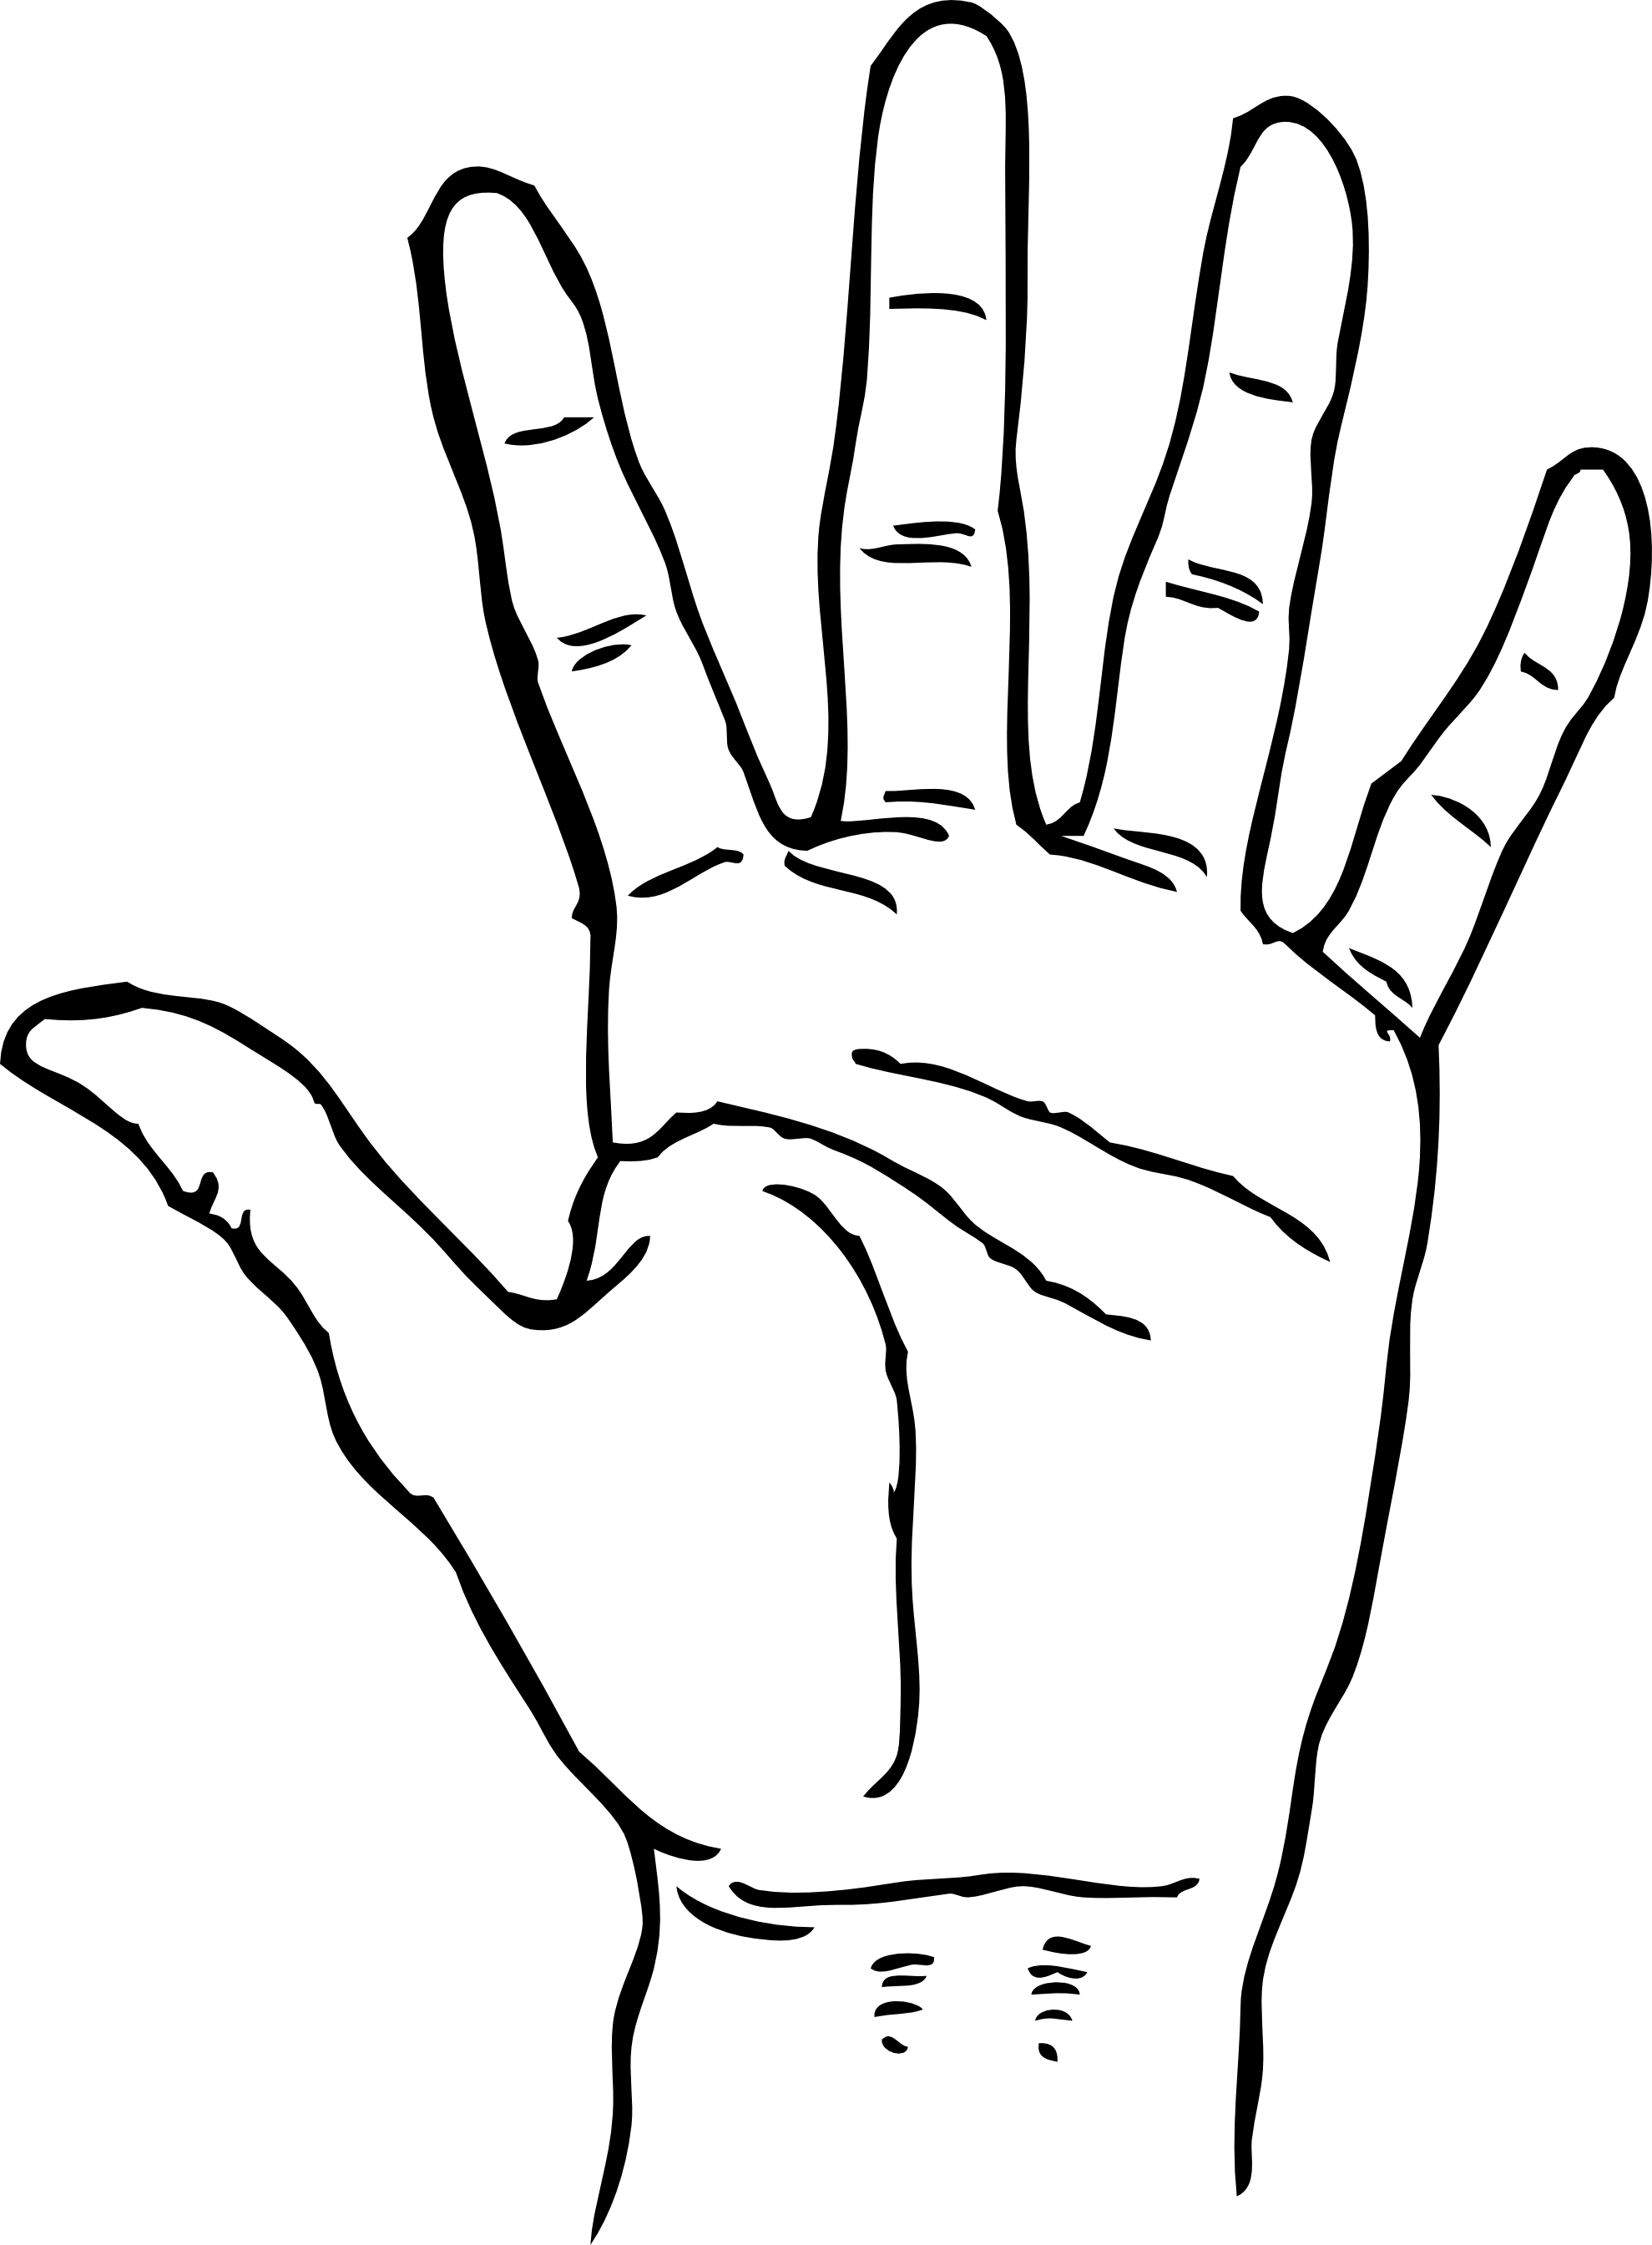 Hand  black and white hands clipart black and white free images